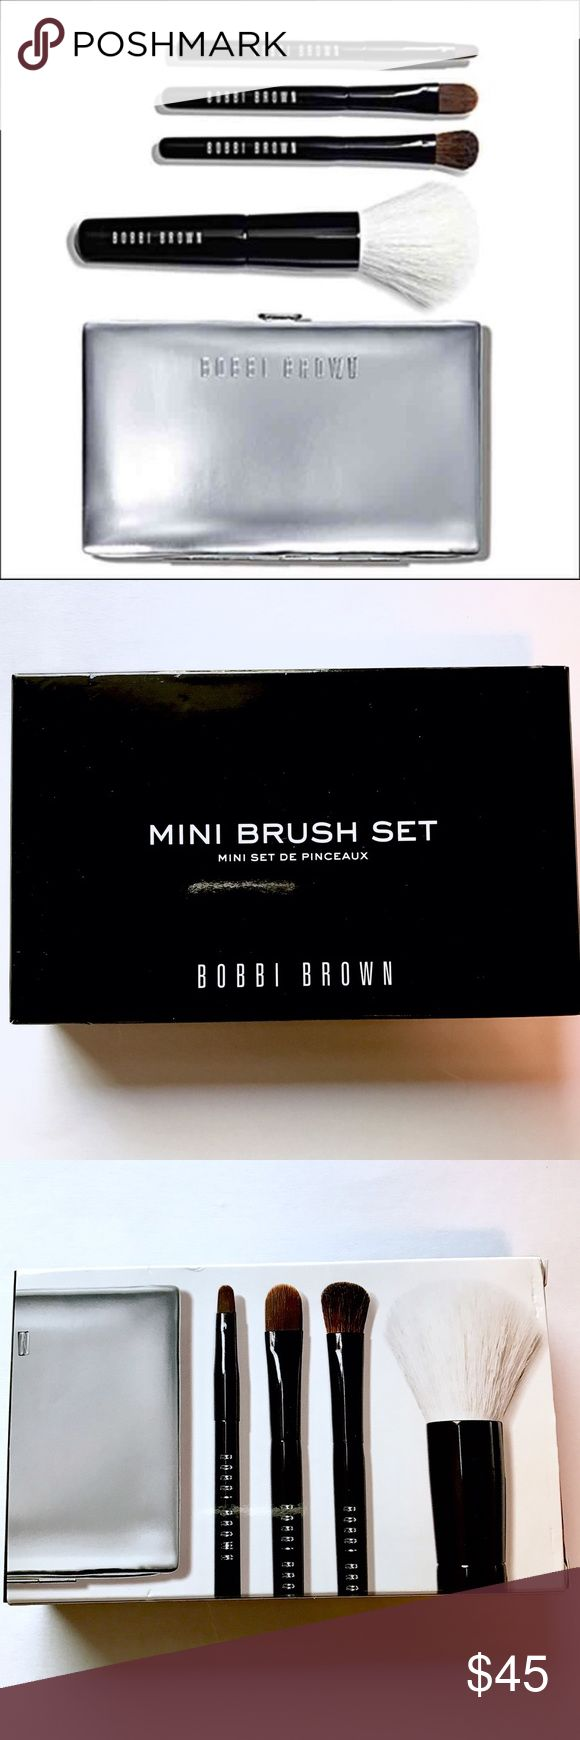 NIB - Bobbi Brown Mini Brush Set Authentic Bobbi Brown Mini Brush Set Includes:  Brush Case • Mini Face Blender Brush • Mini Cream Shadow Brush • Mini Eye Shadow Brush • Mini Ultra Fine Eye Liner Brush - Mini brushes have compact handles but full size brush heads - BNIB - Never Used Bobbi Brown Makeup Brushes & Tools